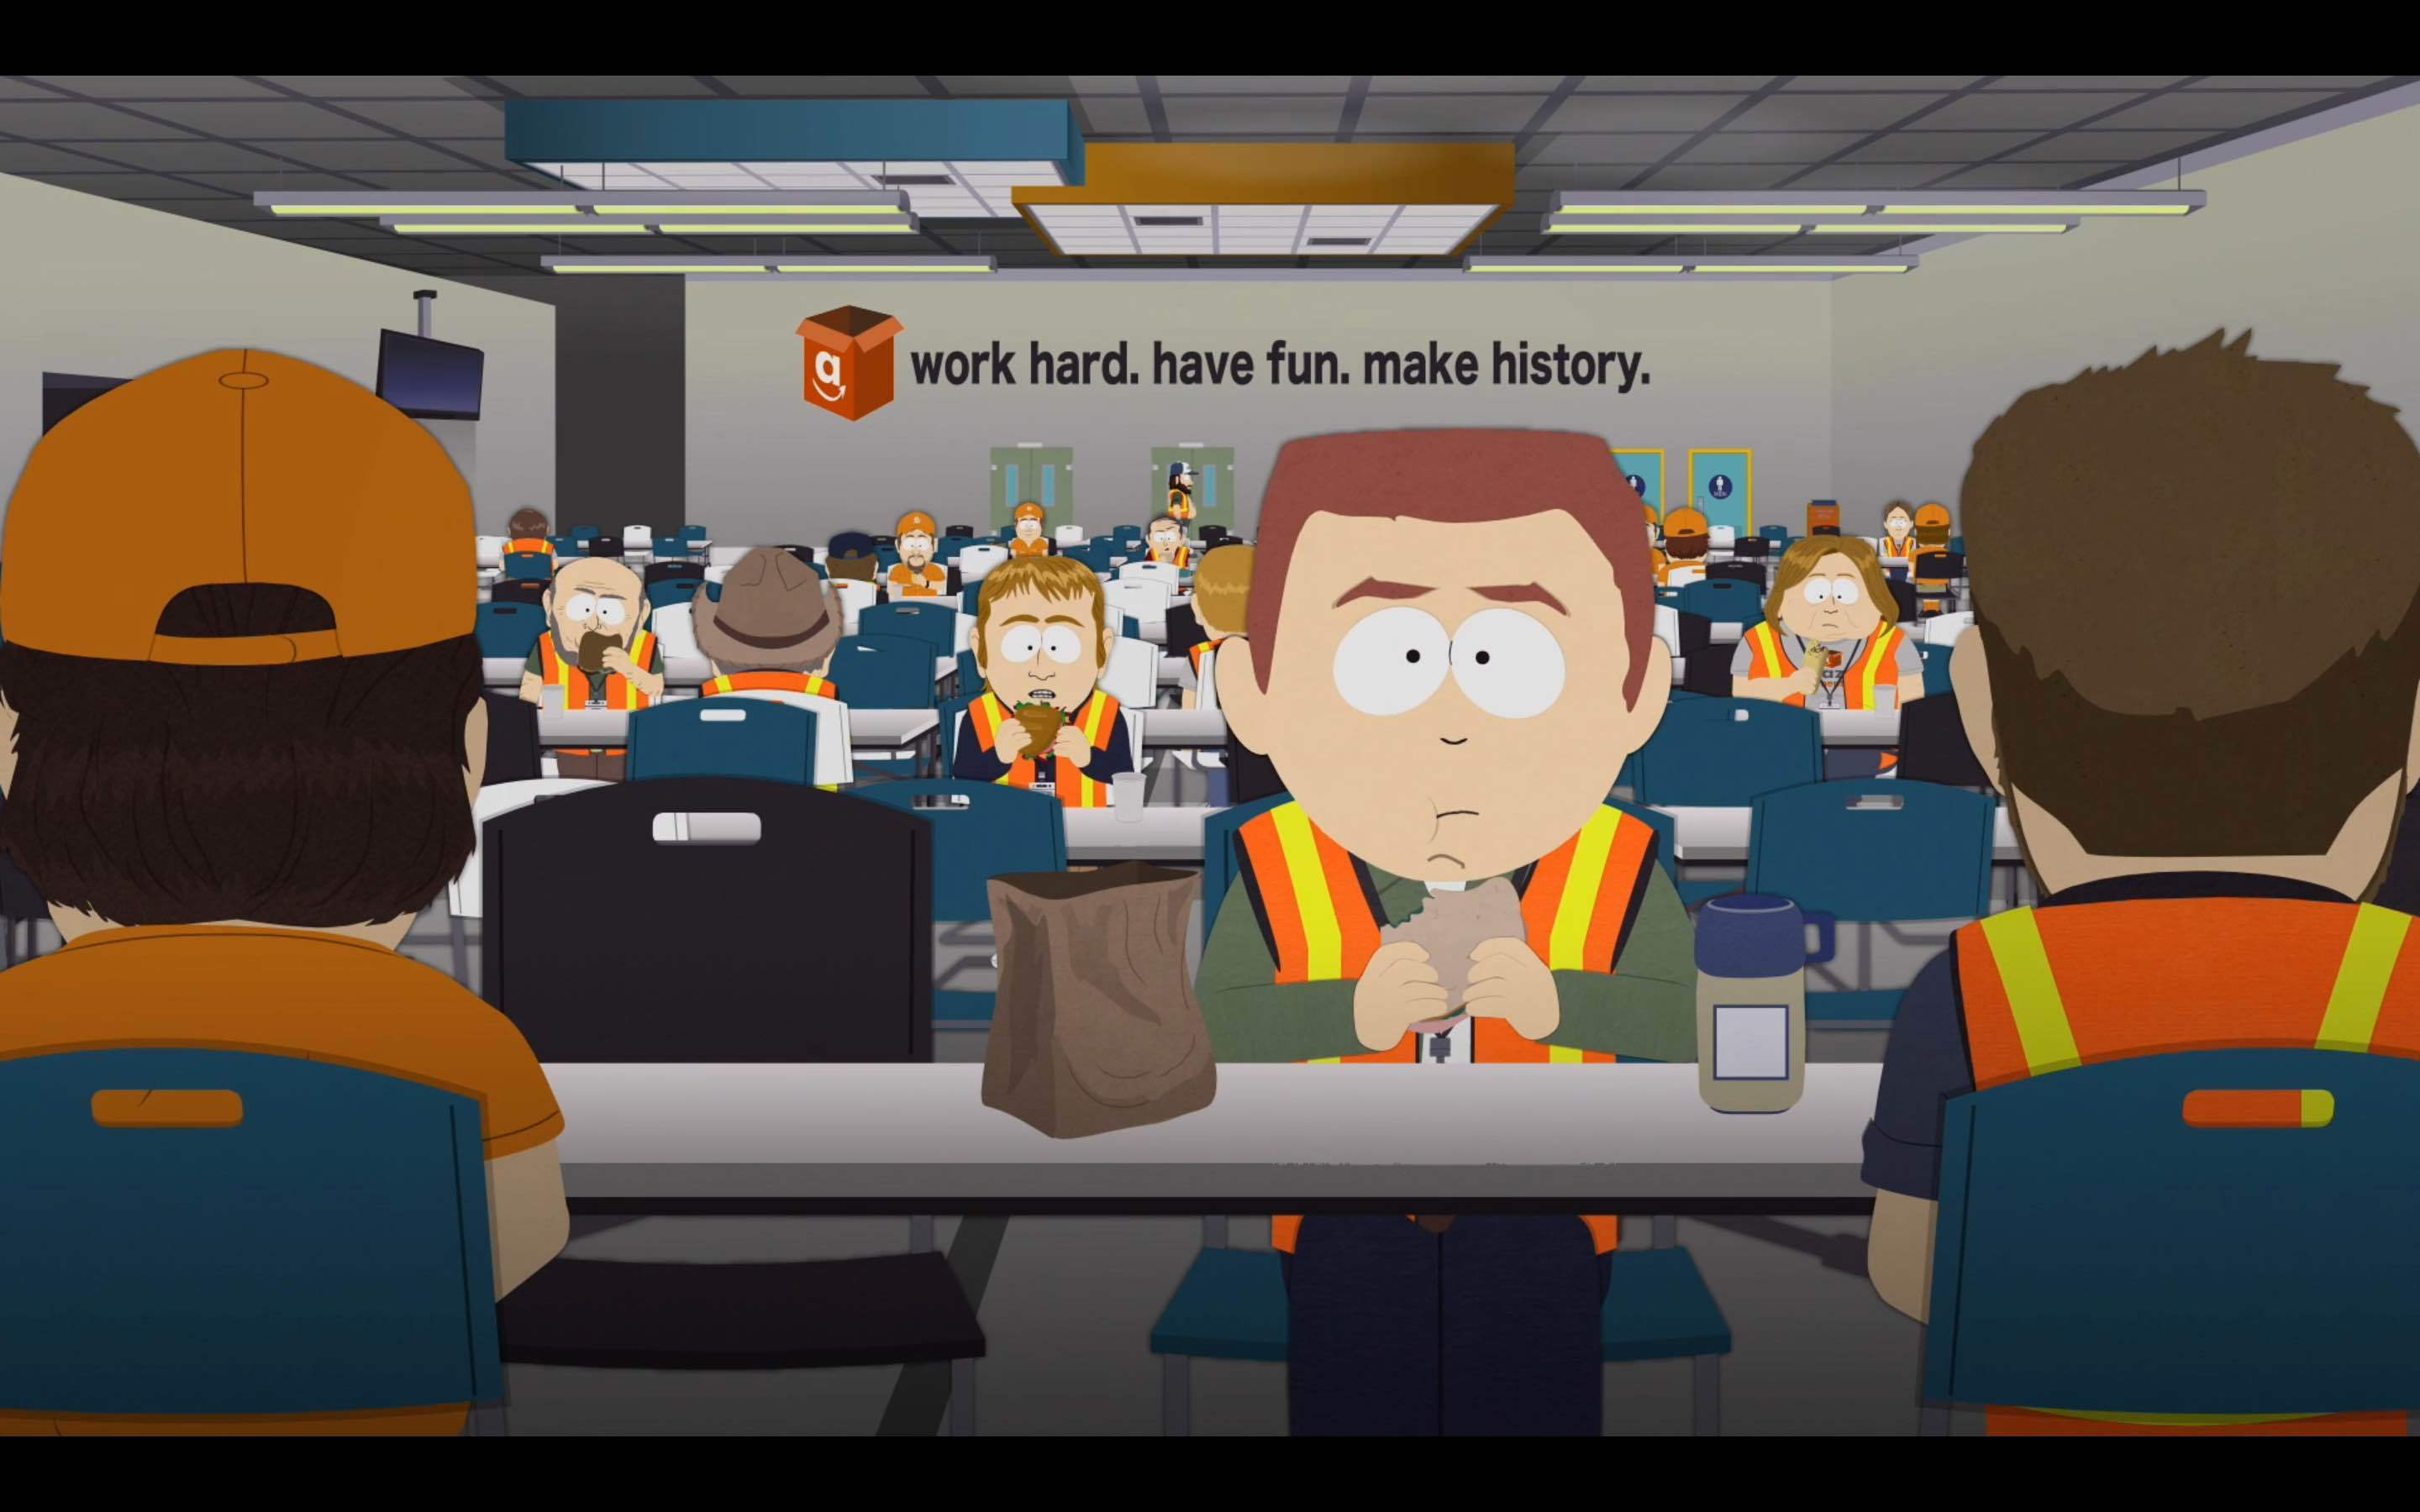 Guess what was the theme for tonight's South Park episode?